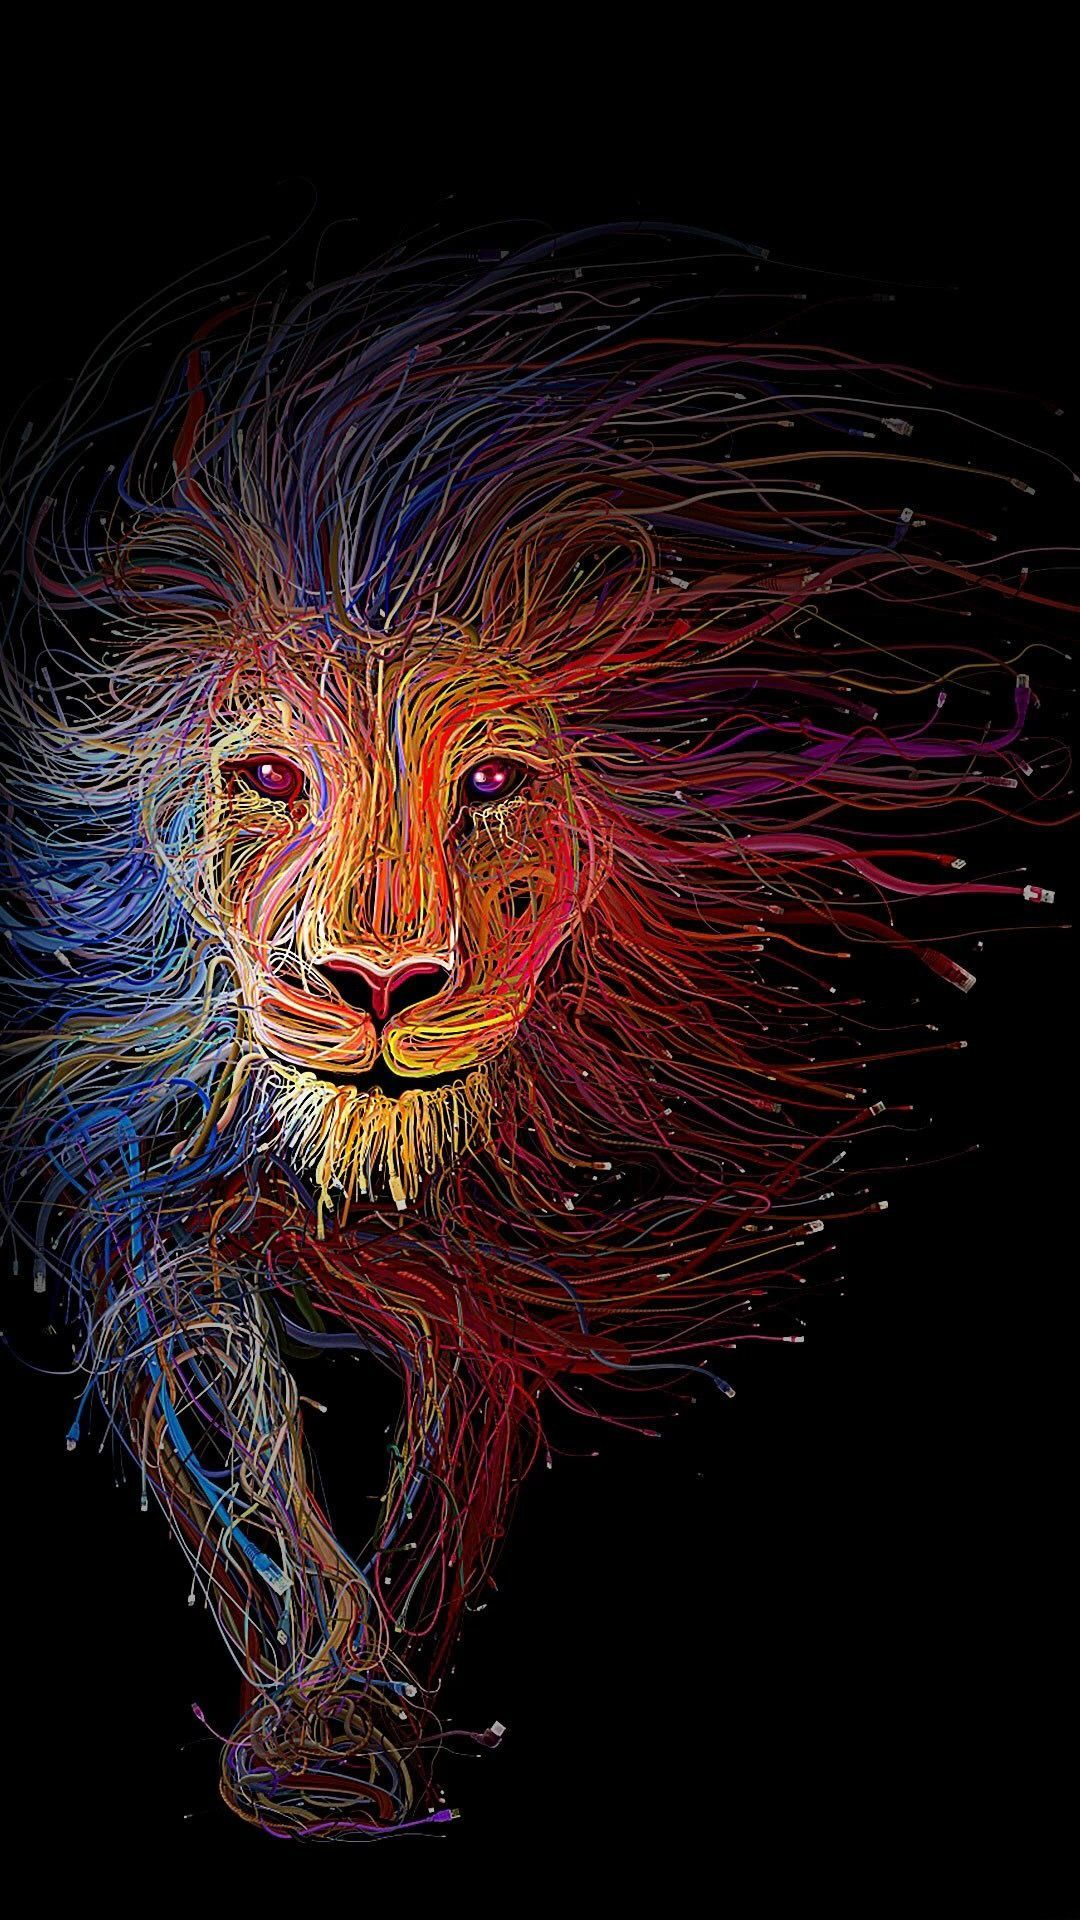 Pin By Wallpapers Ideas On Galleryofblack Lion Wallpaper Colorful Lion Wallpaper